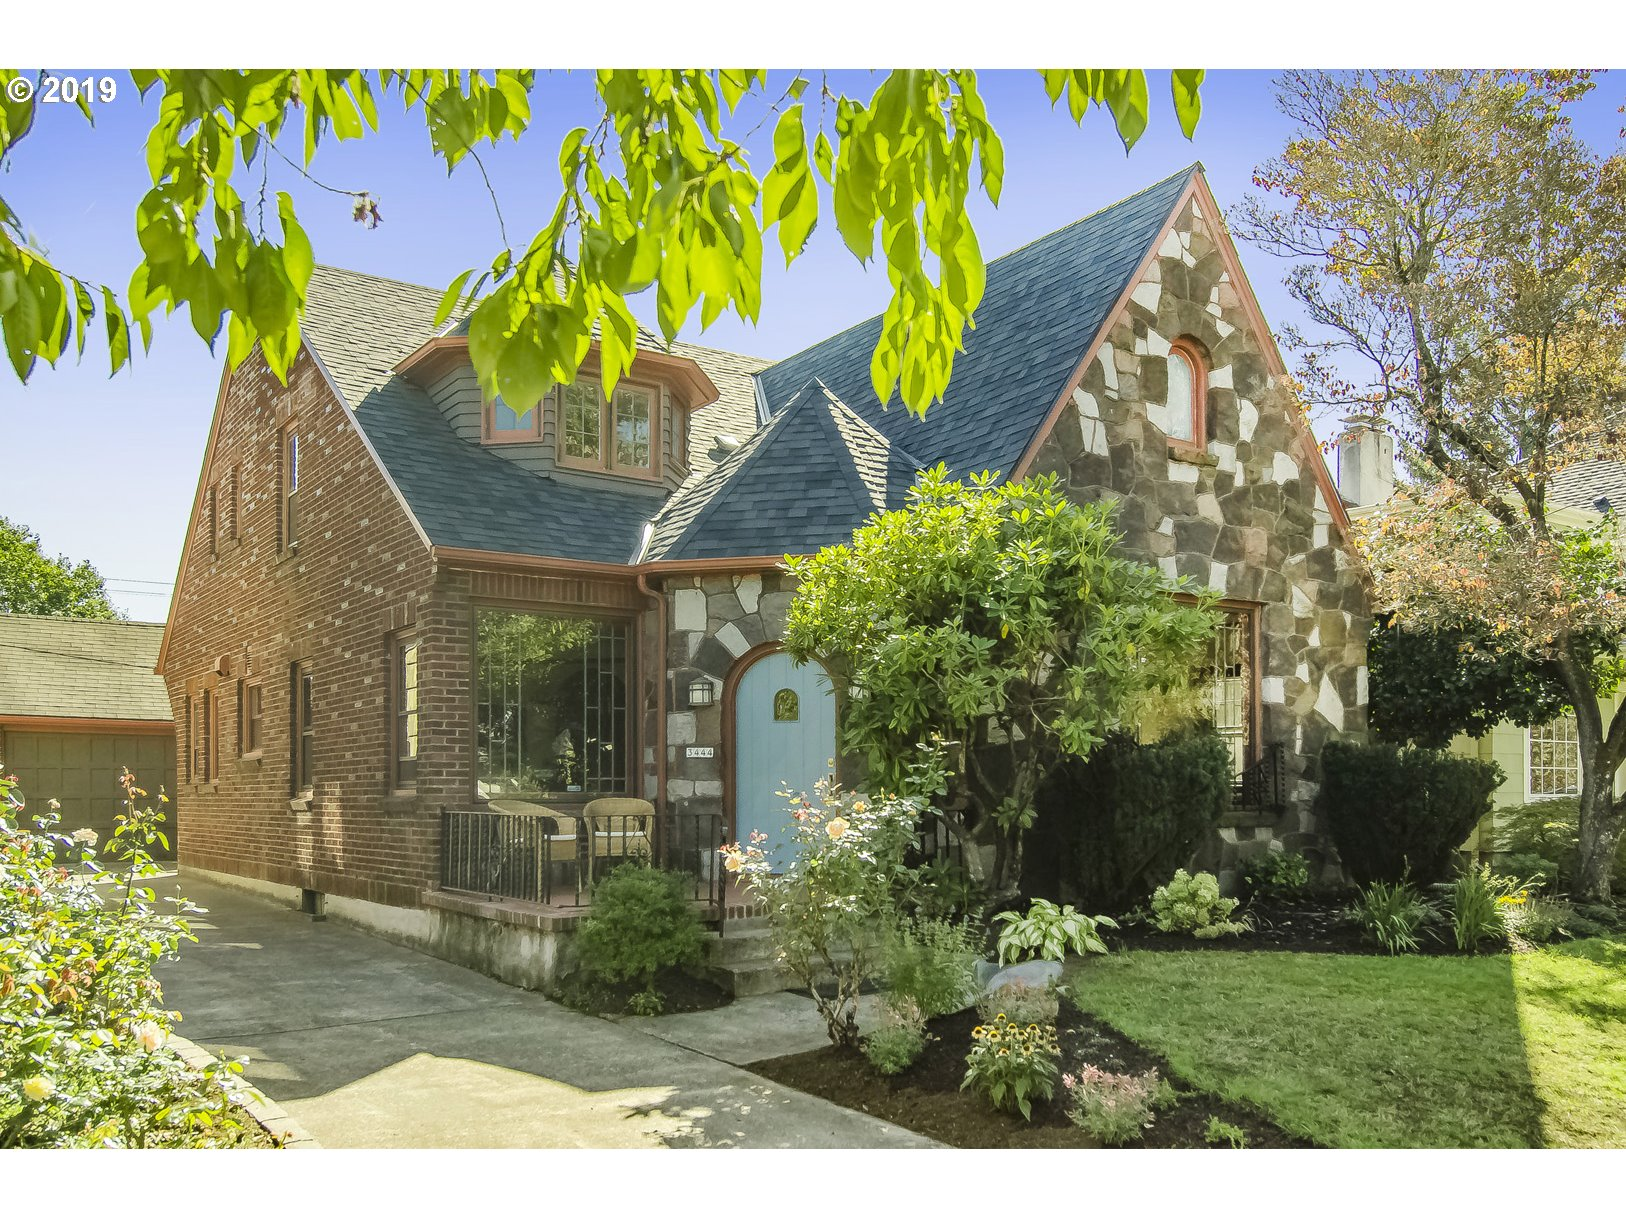 This lovely Alameda tudor-style home has recently been updated. The house is a statement of classic architecture with wood floors, leaded windows, period moldings and coved ceilings. This timeless residence is light and bright enjoys a spacious eat-in kitchen, lovely formal areas, an expansive family room and an office. Enjoy the elegance of the past and the livability of today close to shops, parks, and easy freeway access. [Home Energy Score = 3. HES Report at https://rpt.greenbuildingregistry.com/hes/OR10044683]